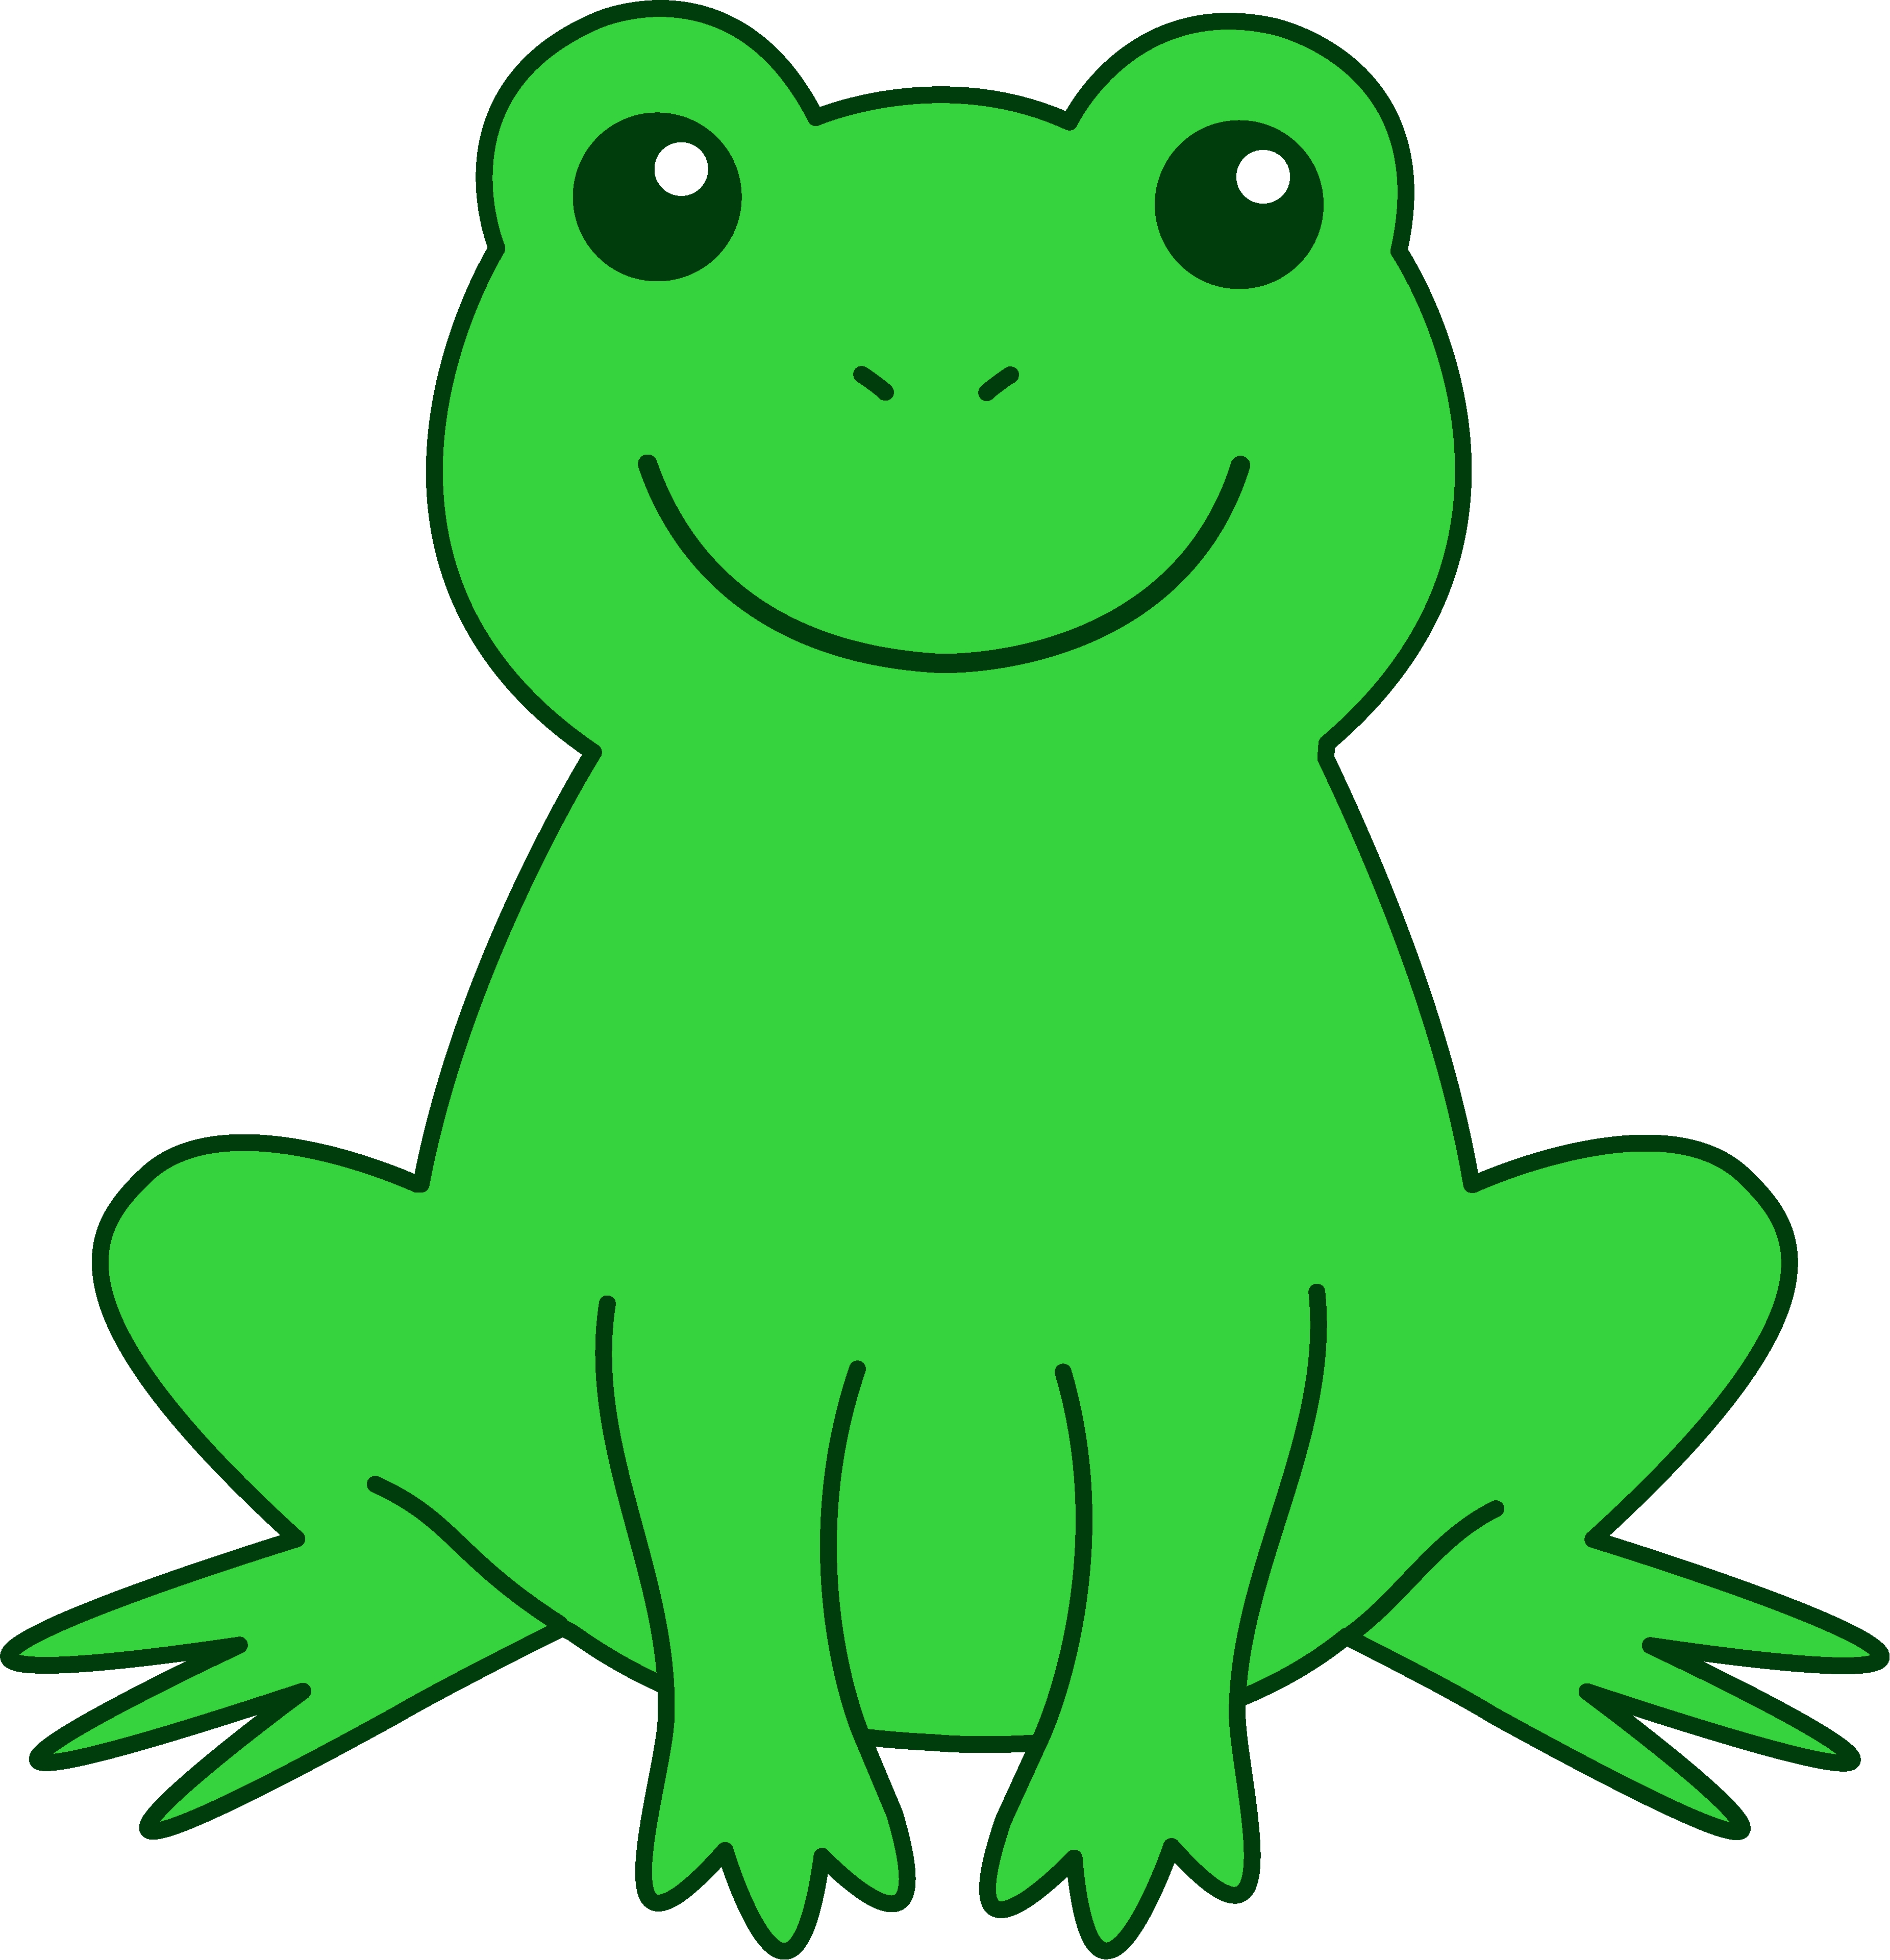 Frog clipart. At getdrawings com free